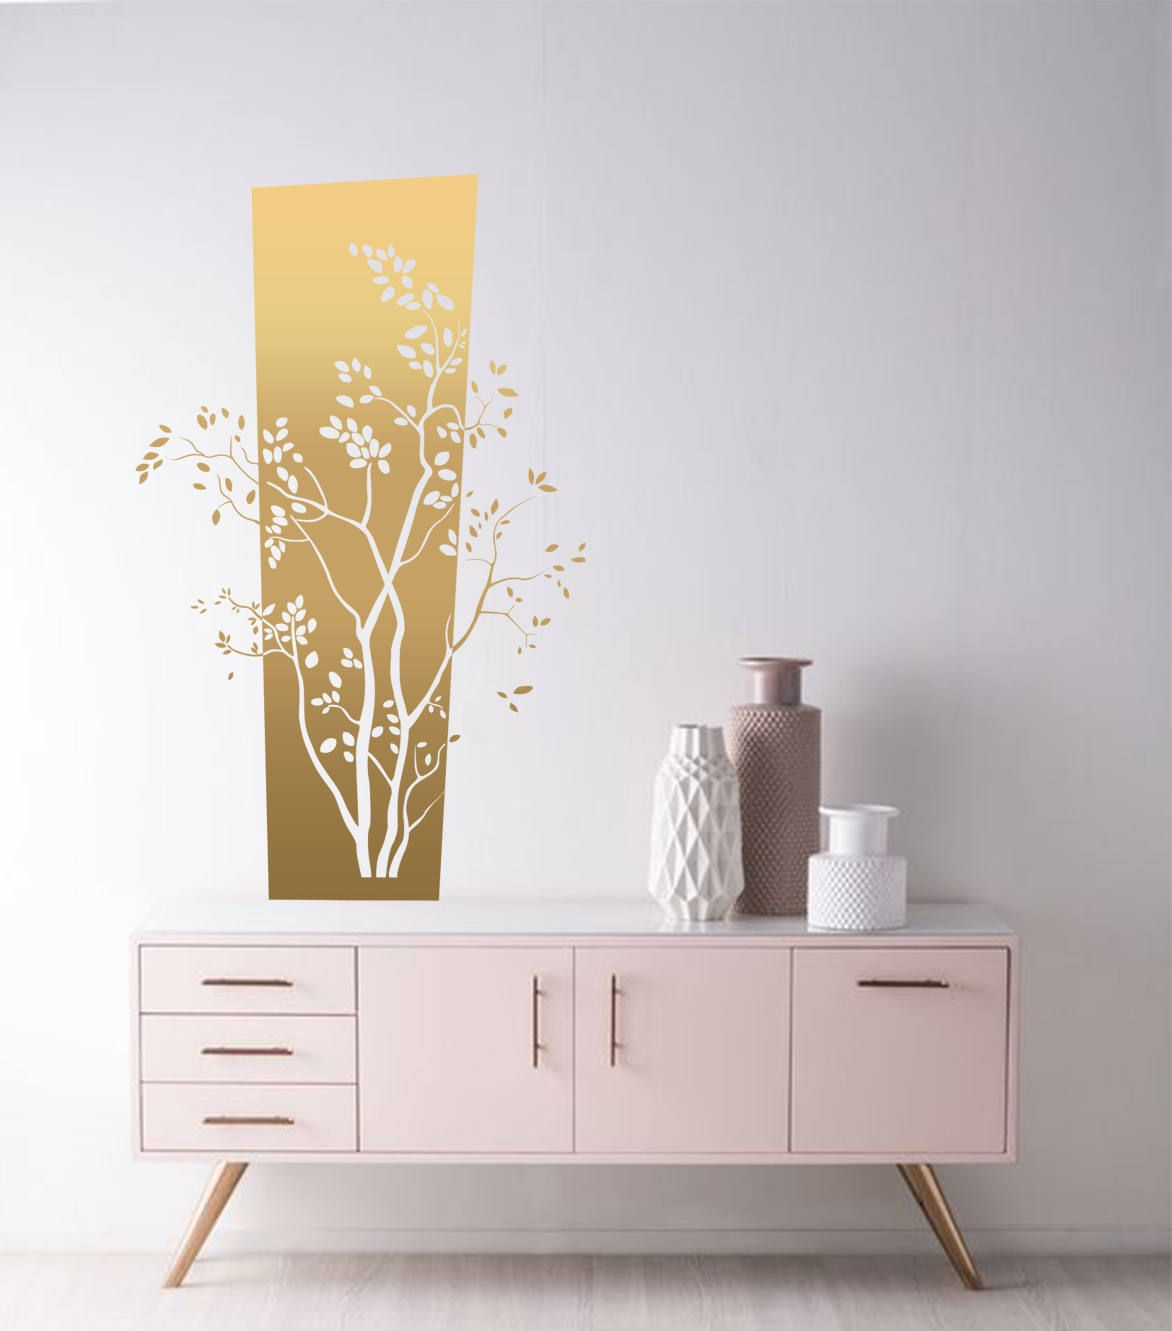 Tree Wall Decals Dorm Trees Decal Nursery Gold Bedroom Decor Leaves By